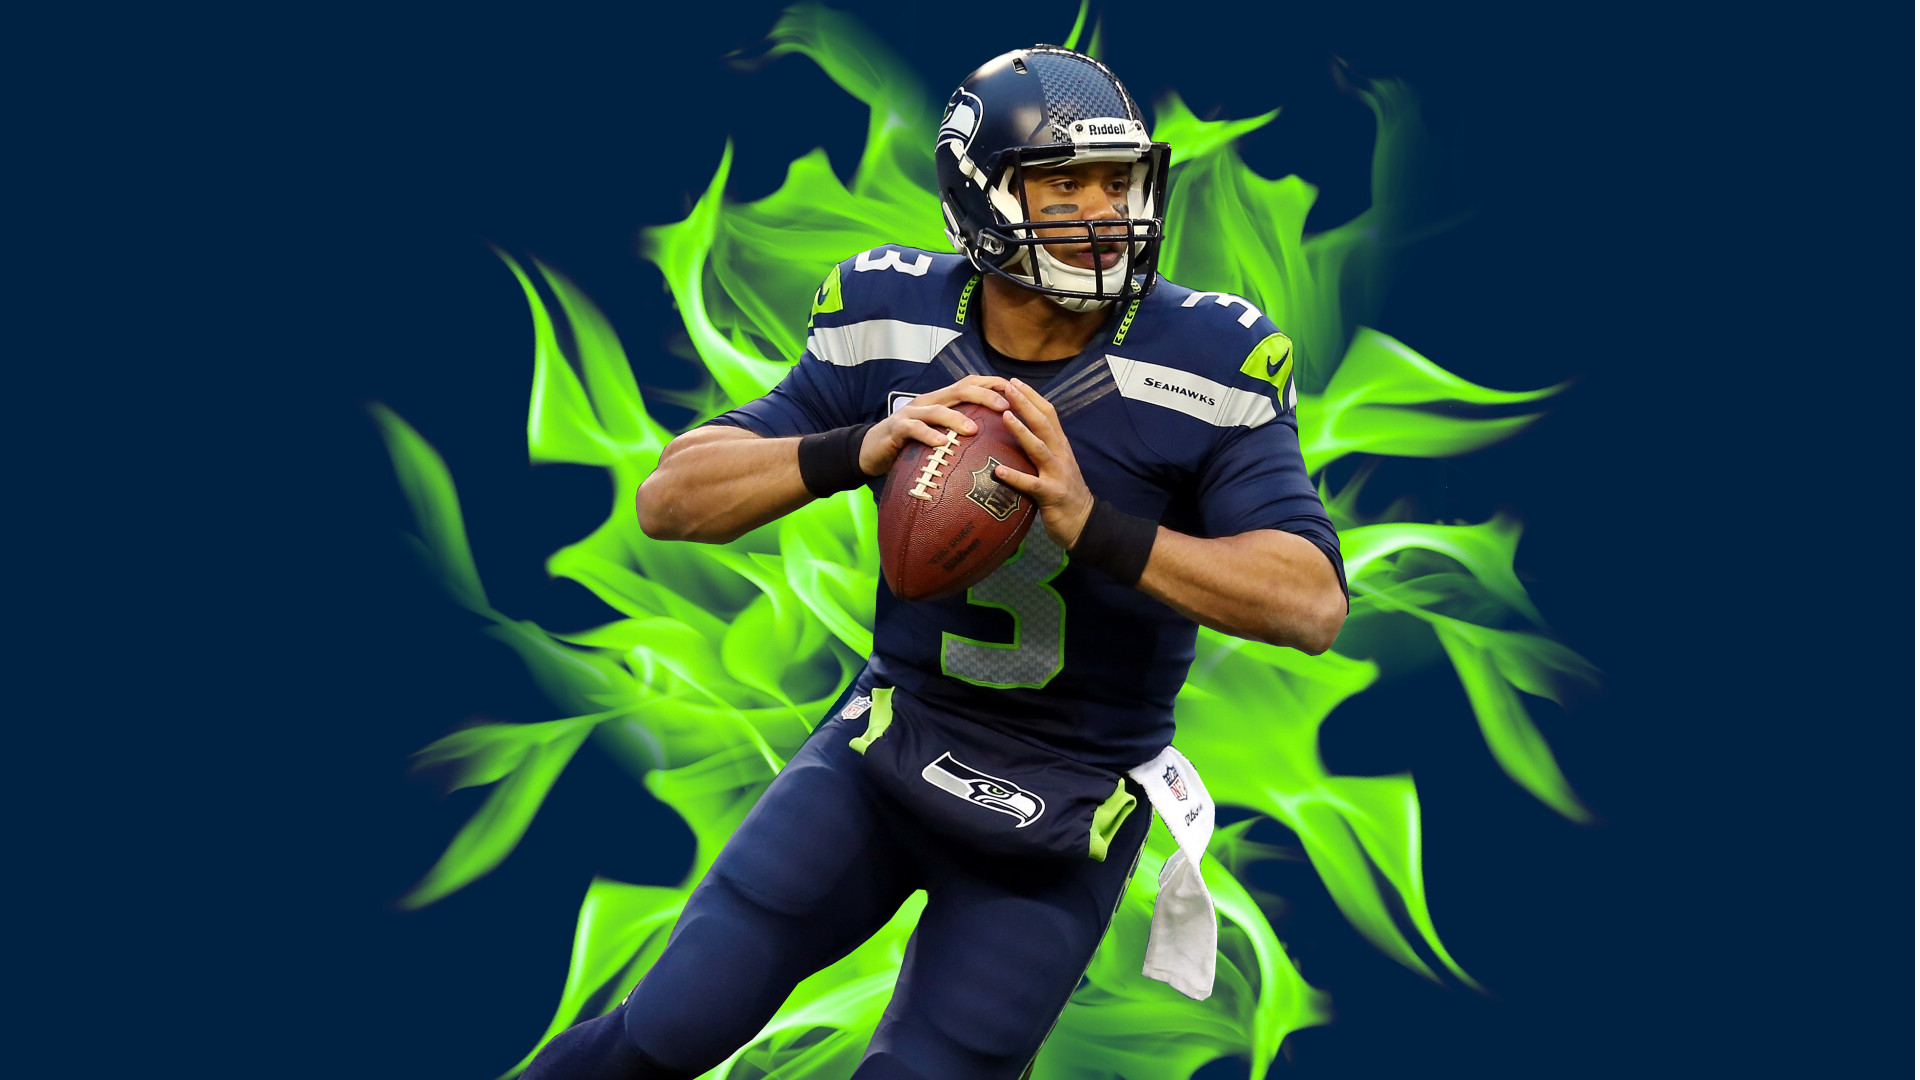 Russell Wilson Wallpapers 63 images 1920x1080